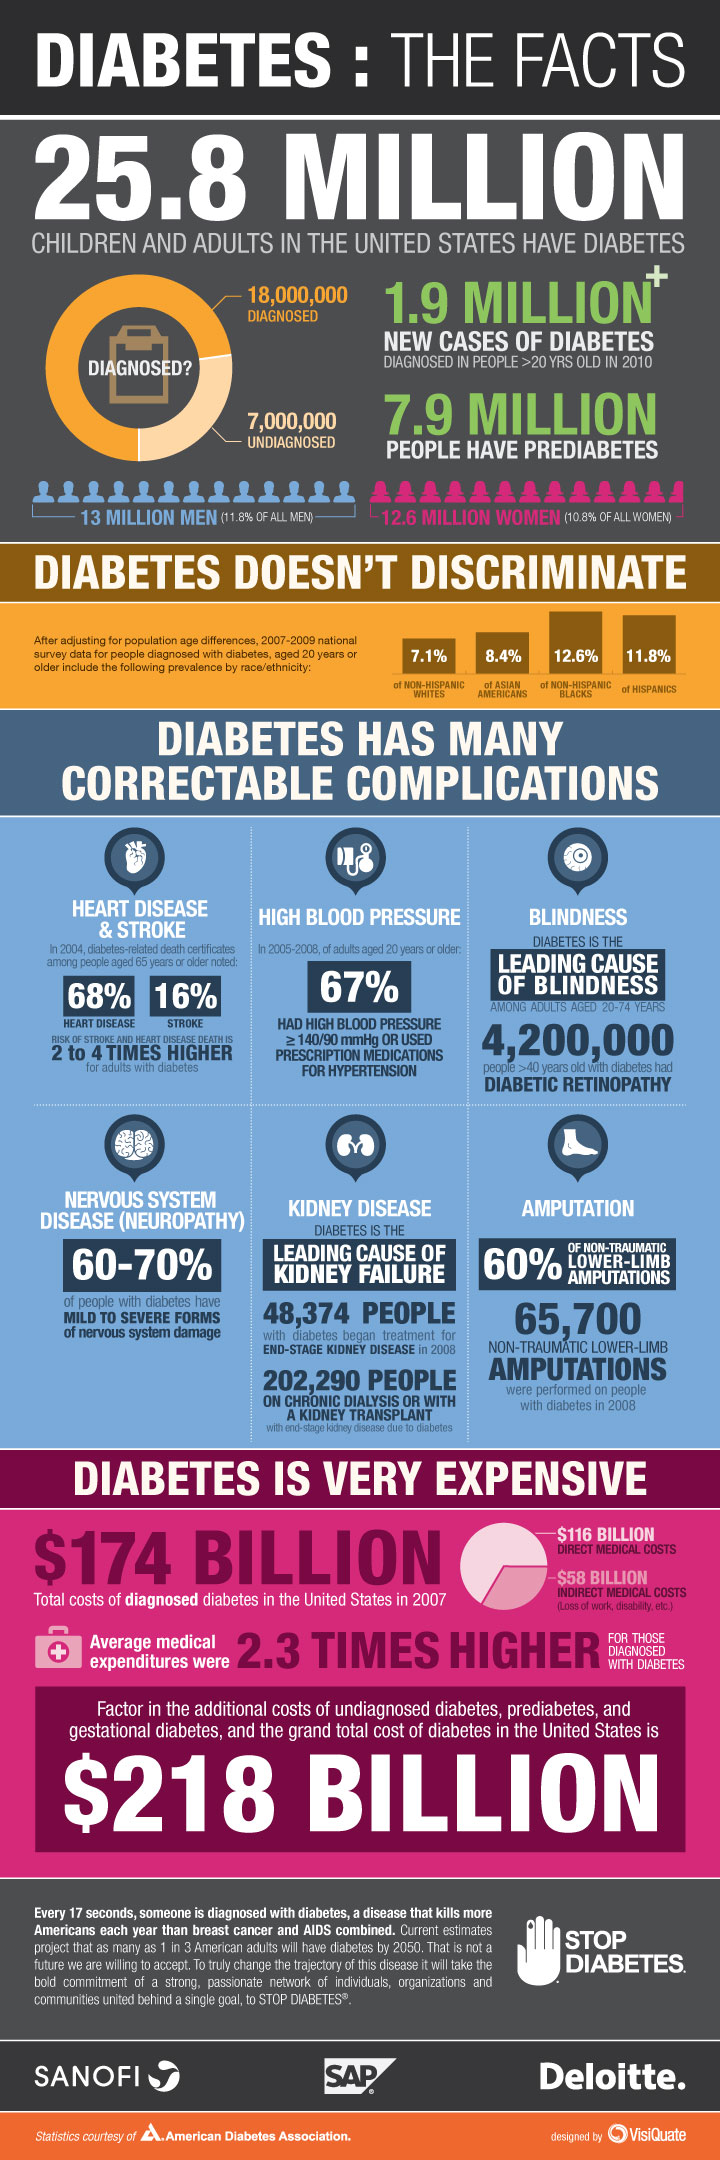 Diabetes Complications and Facts